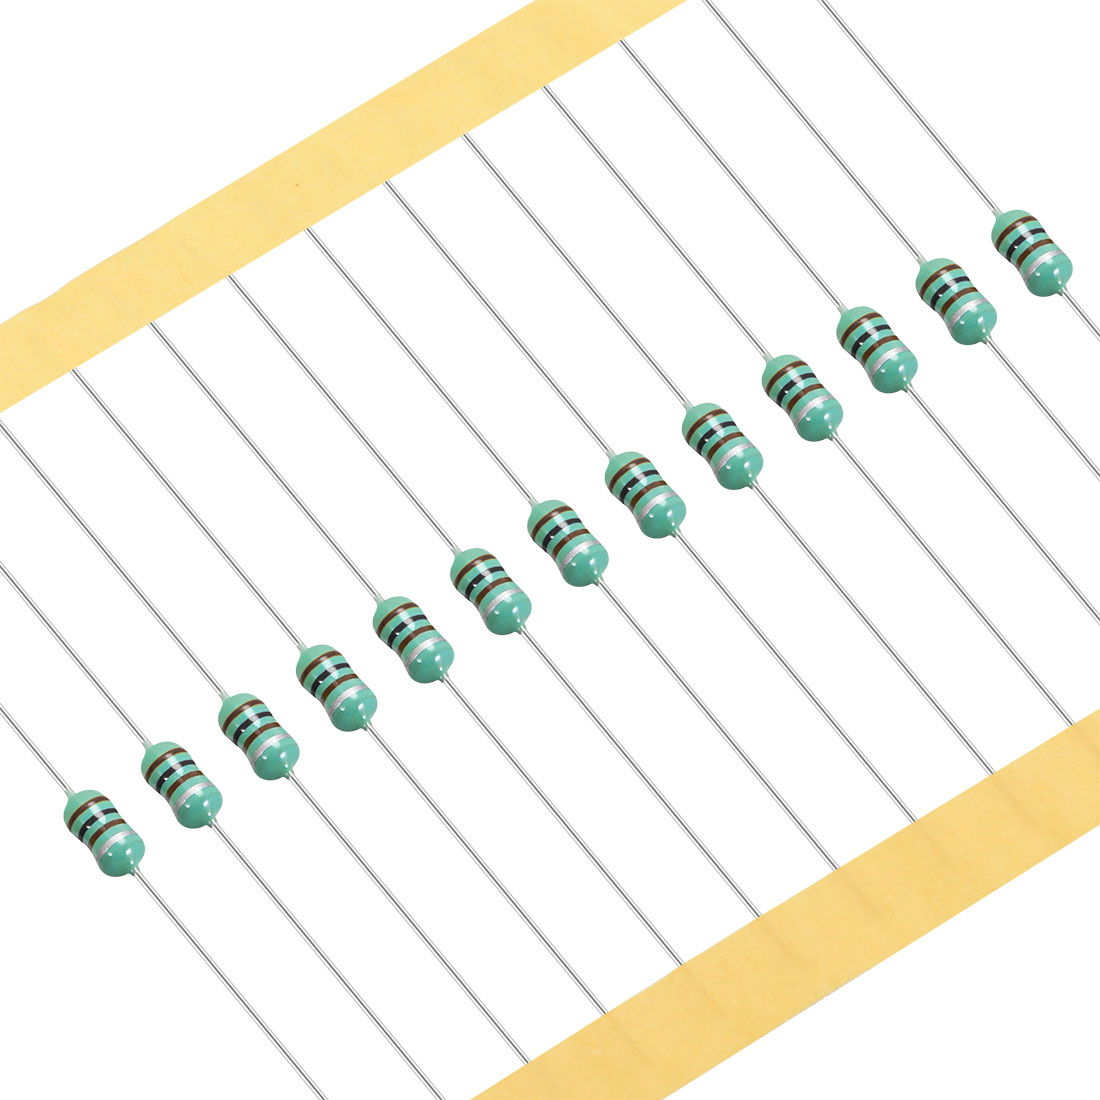 100Pcs 0307 Color Ring Inductor 100uH 0.5W Axial RF Choke Coil Inductor